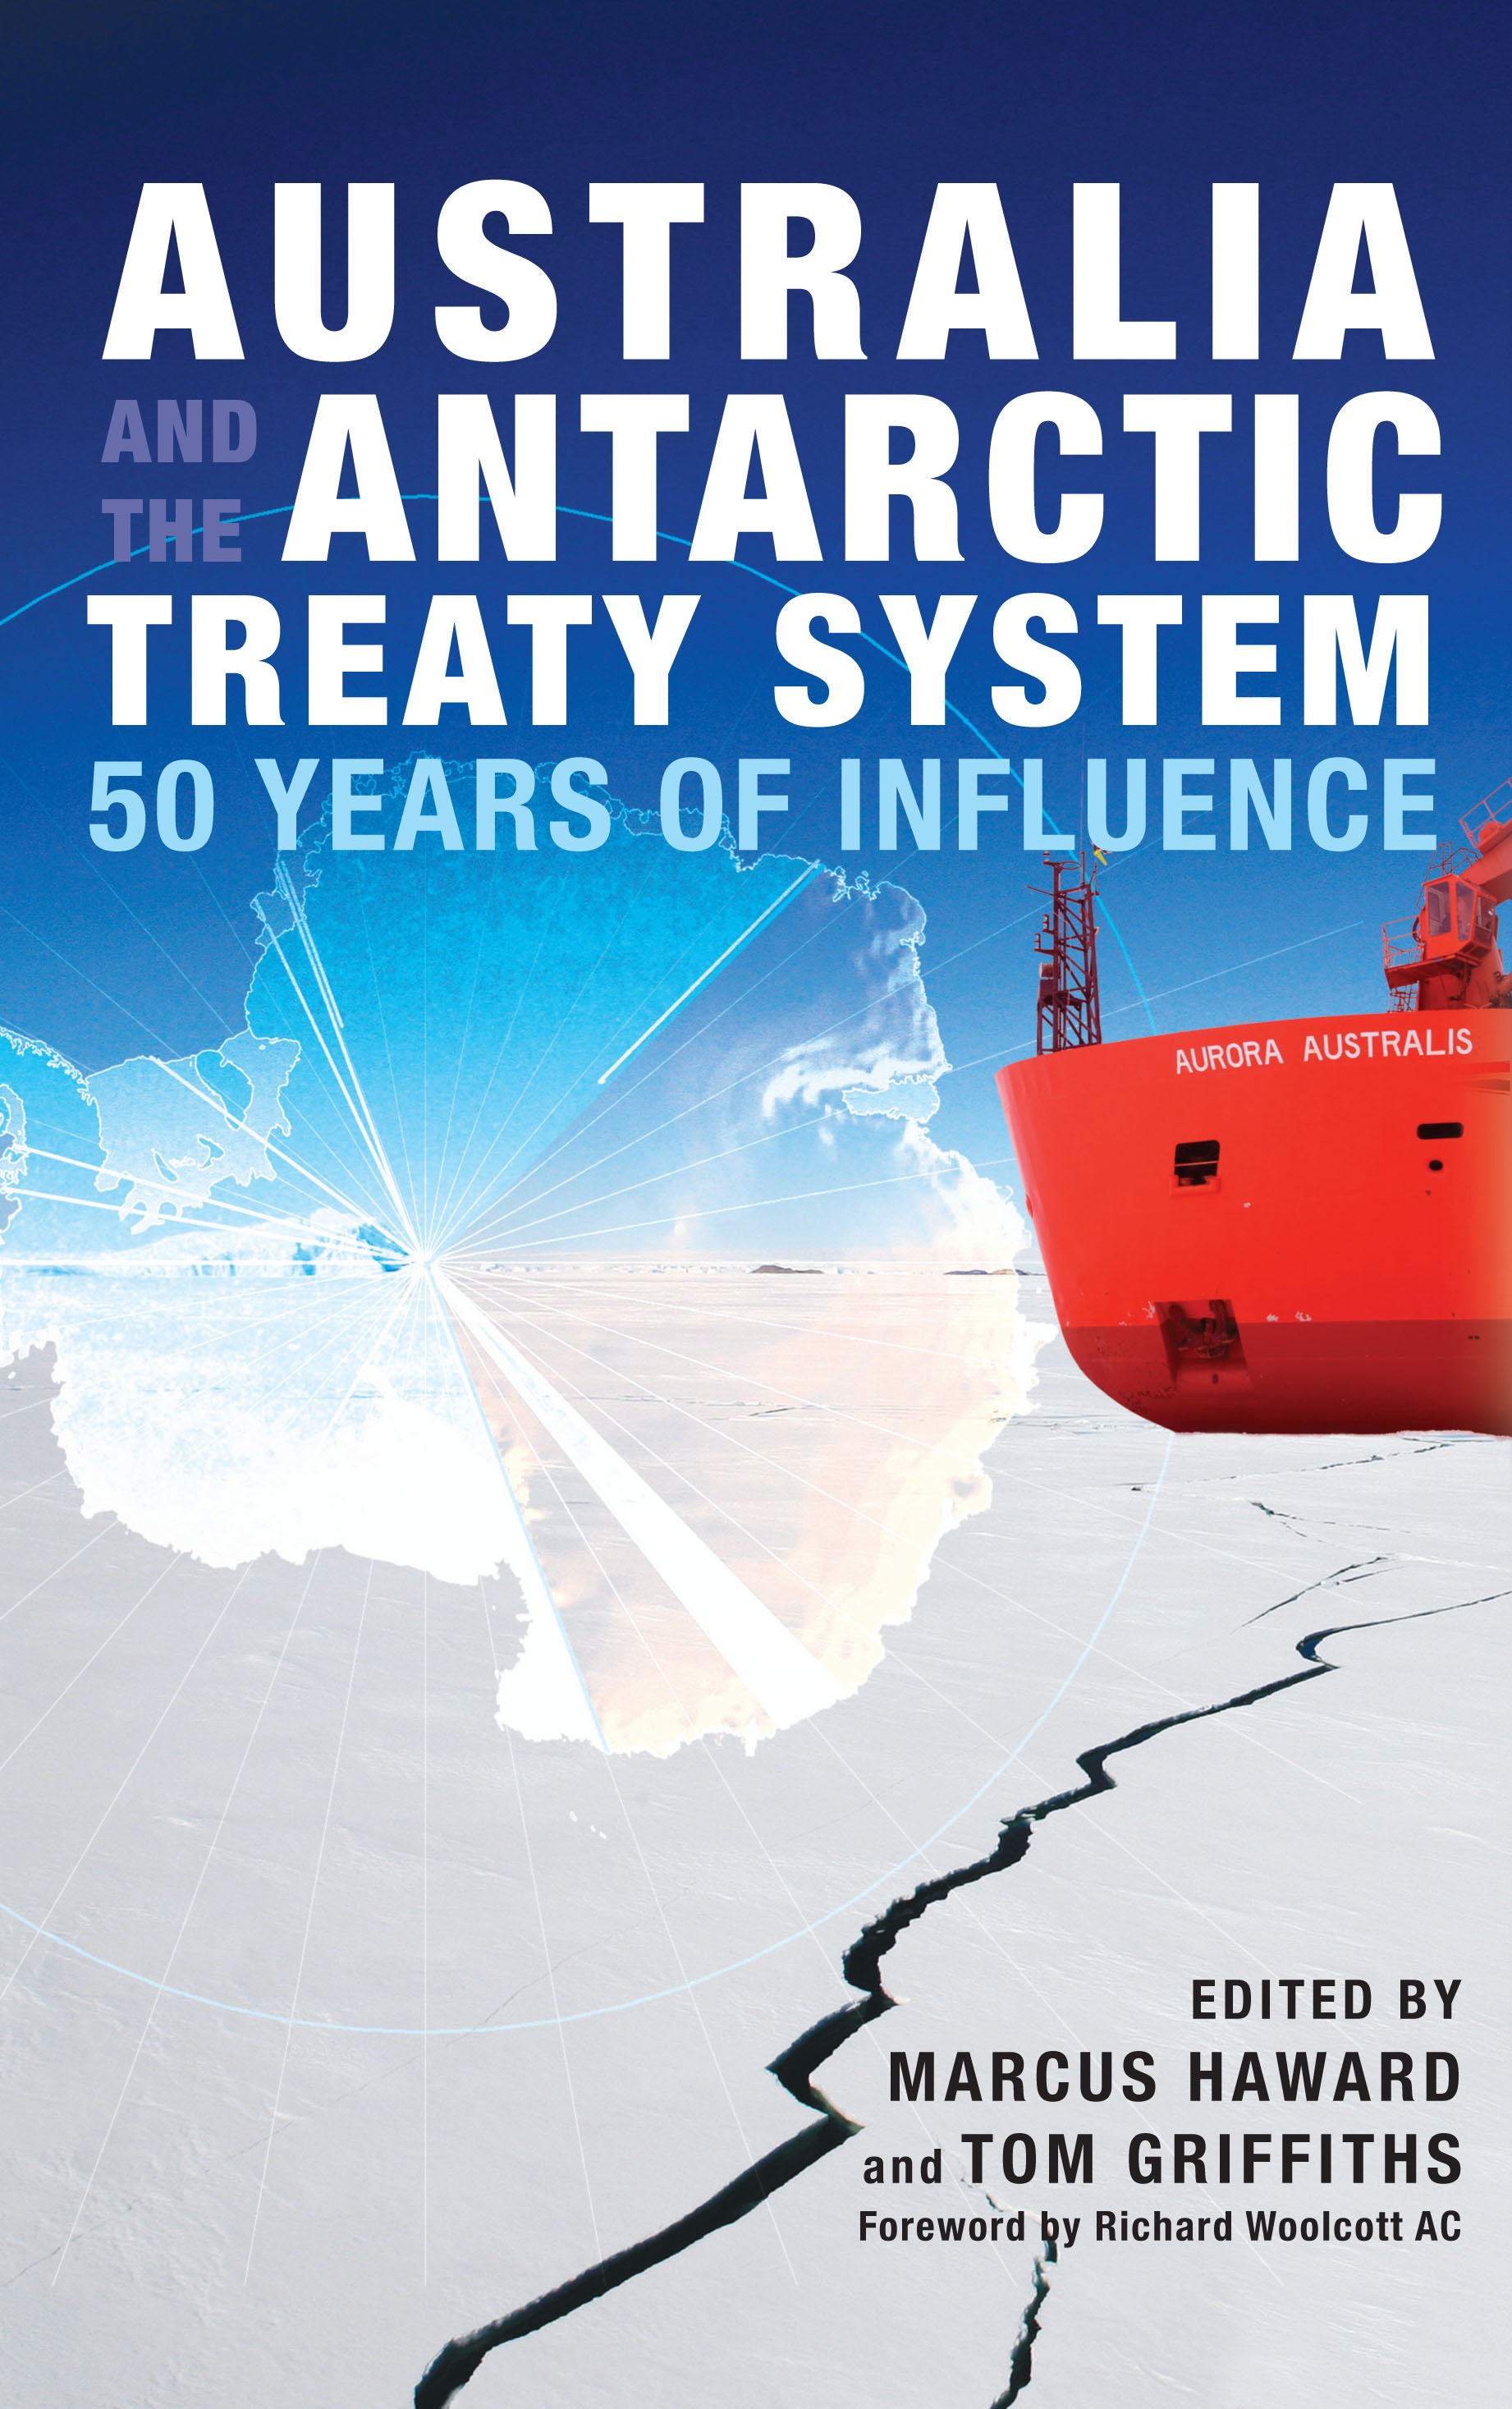 australia and the antarctic treaty system cover